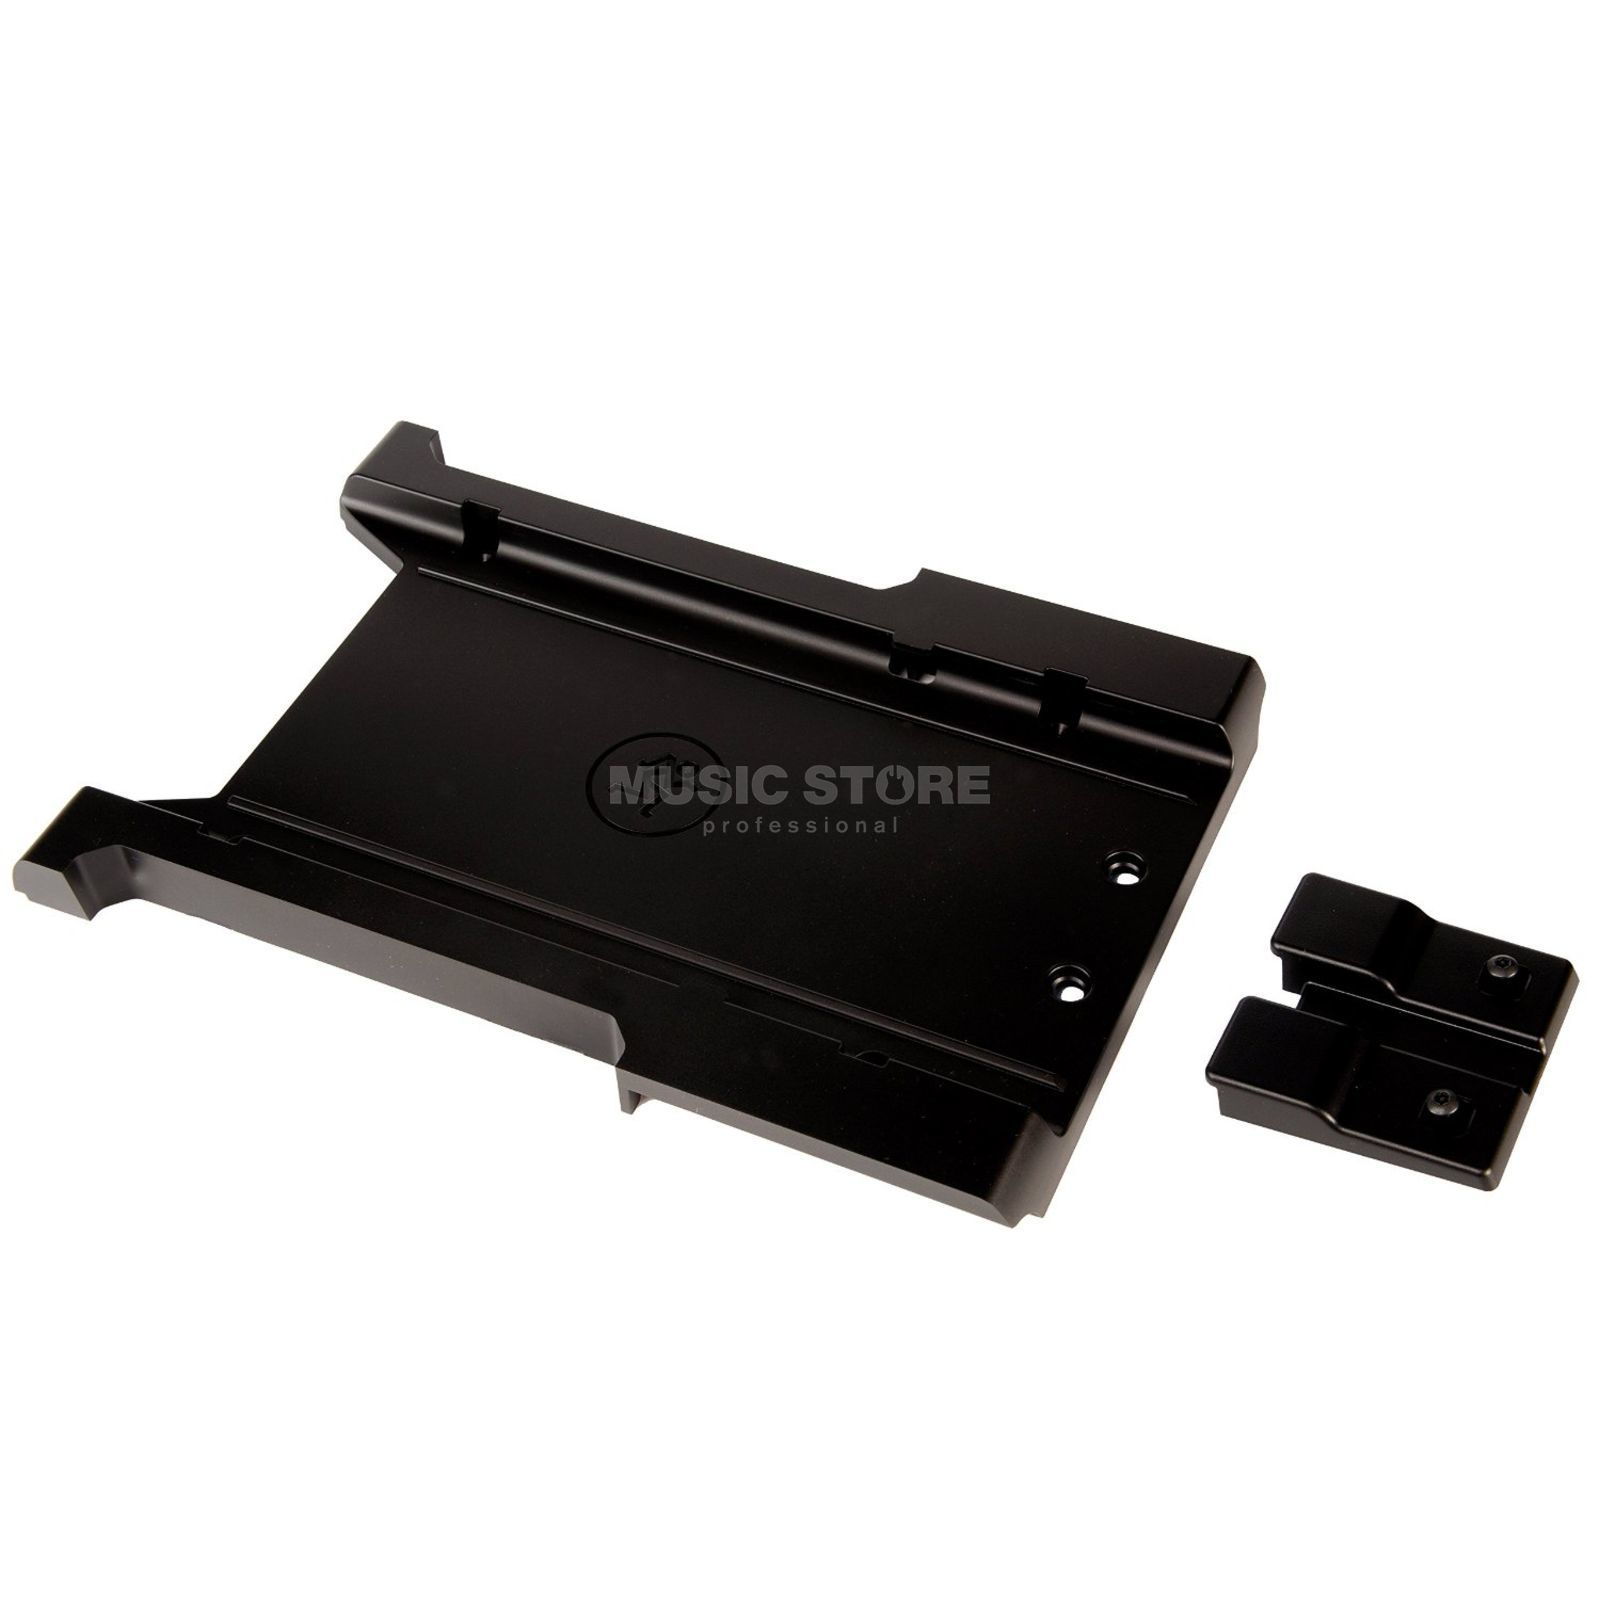 Mackie DL806/1608 iPad mini Tray Kit Lightning Product Image